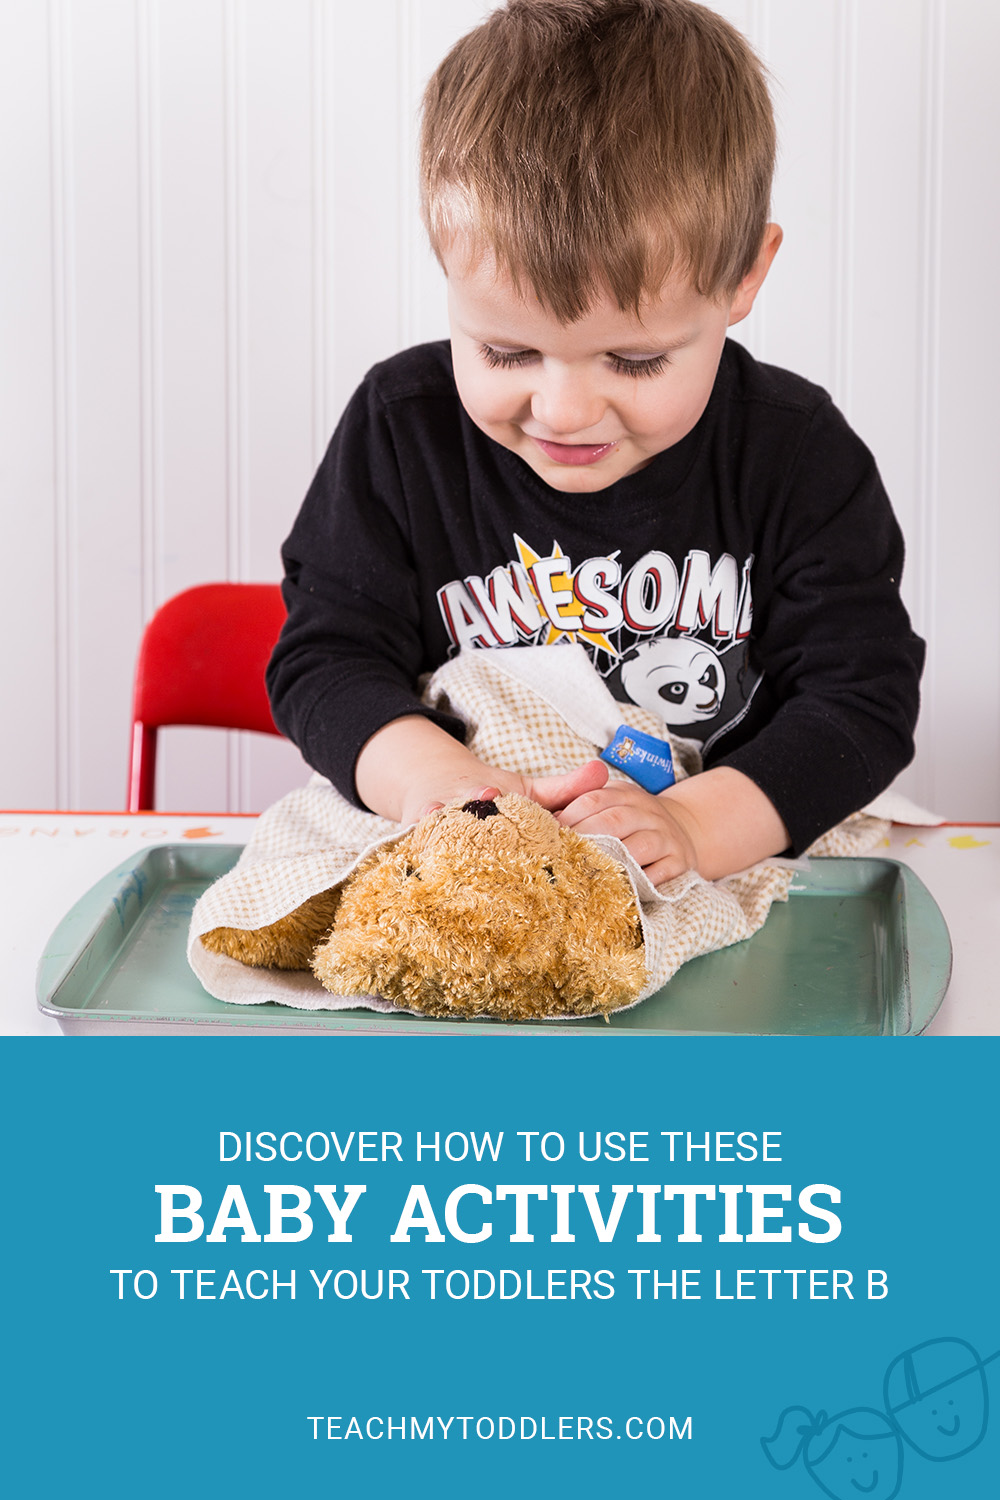 Discover how to use these b is for baby activities to teach your toddlers the letter b